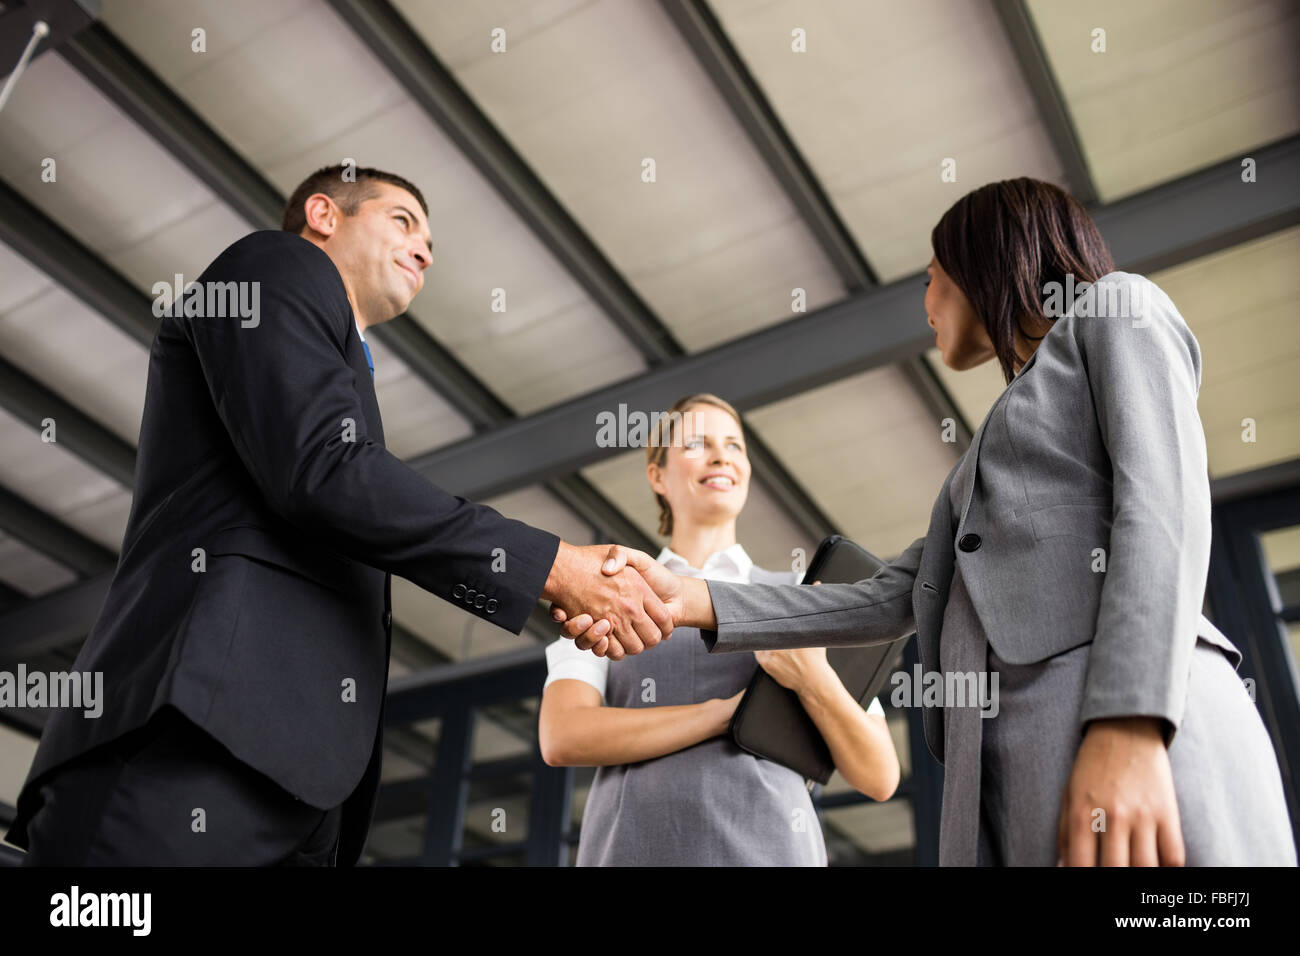 Business people talking together and shaking hands - Stock Image